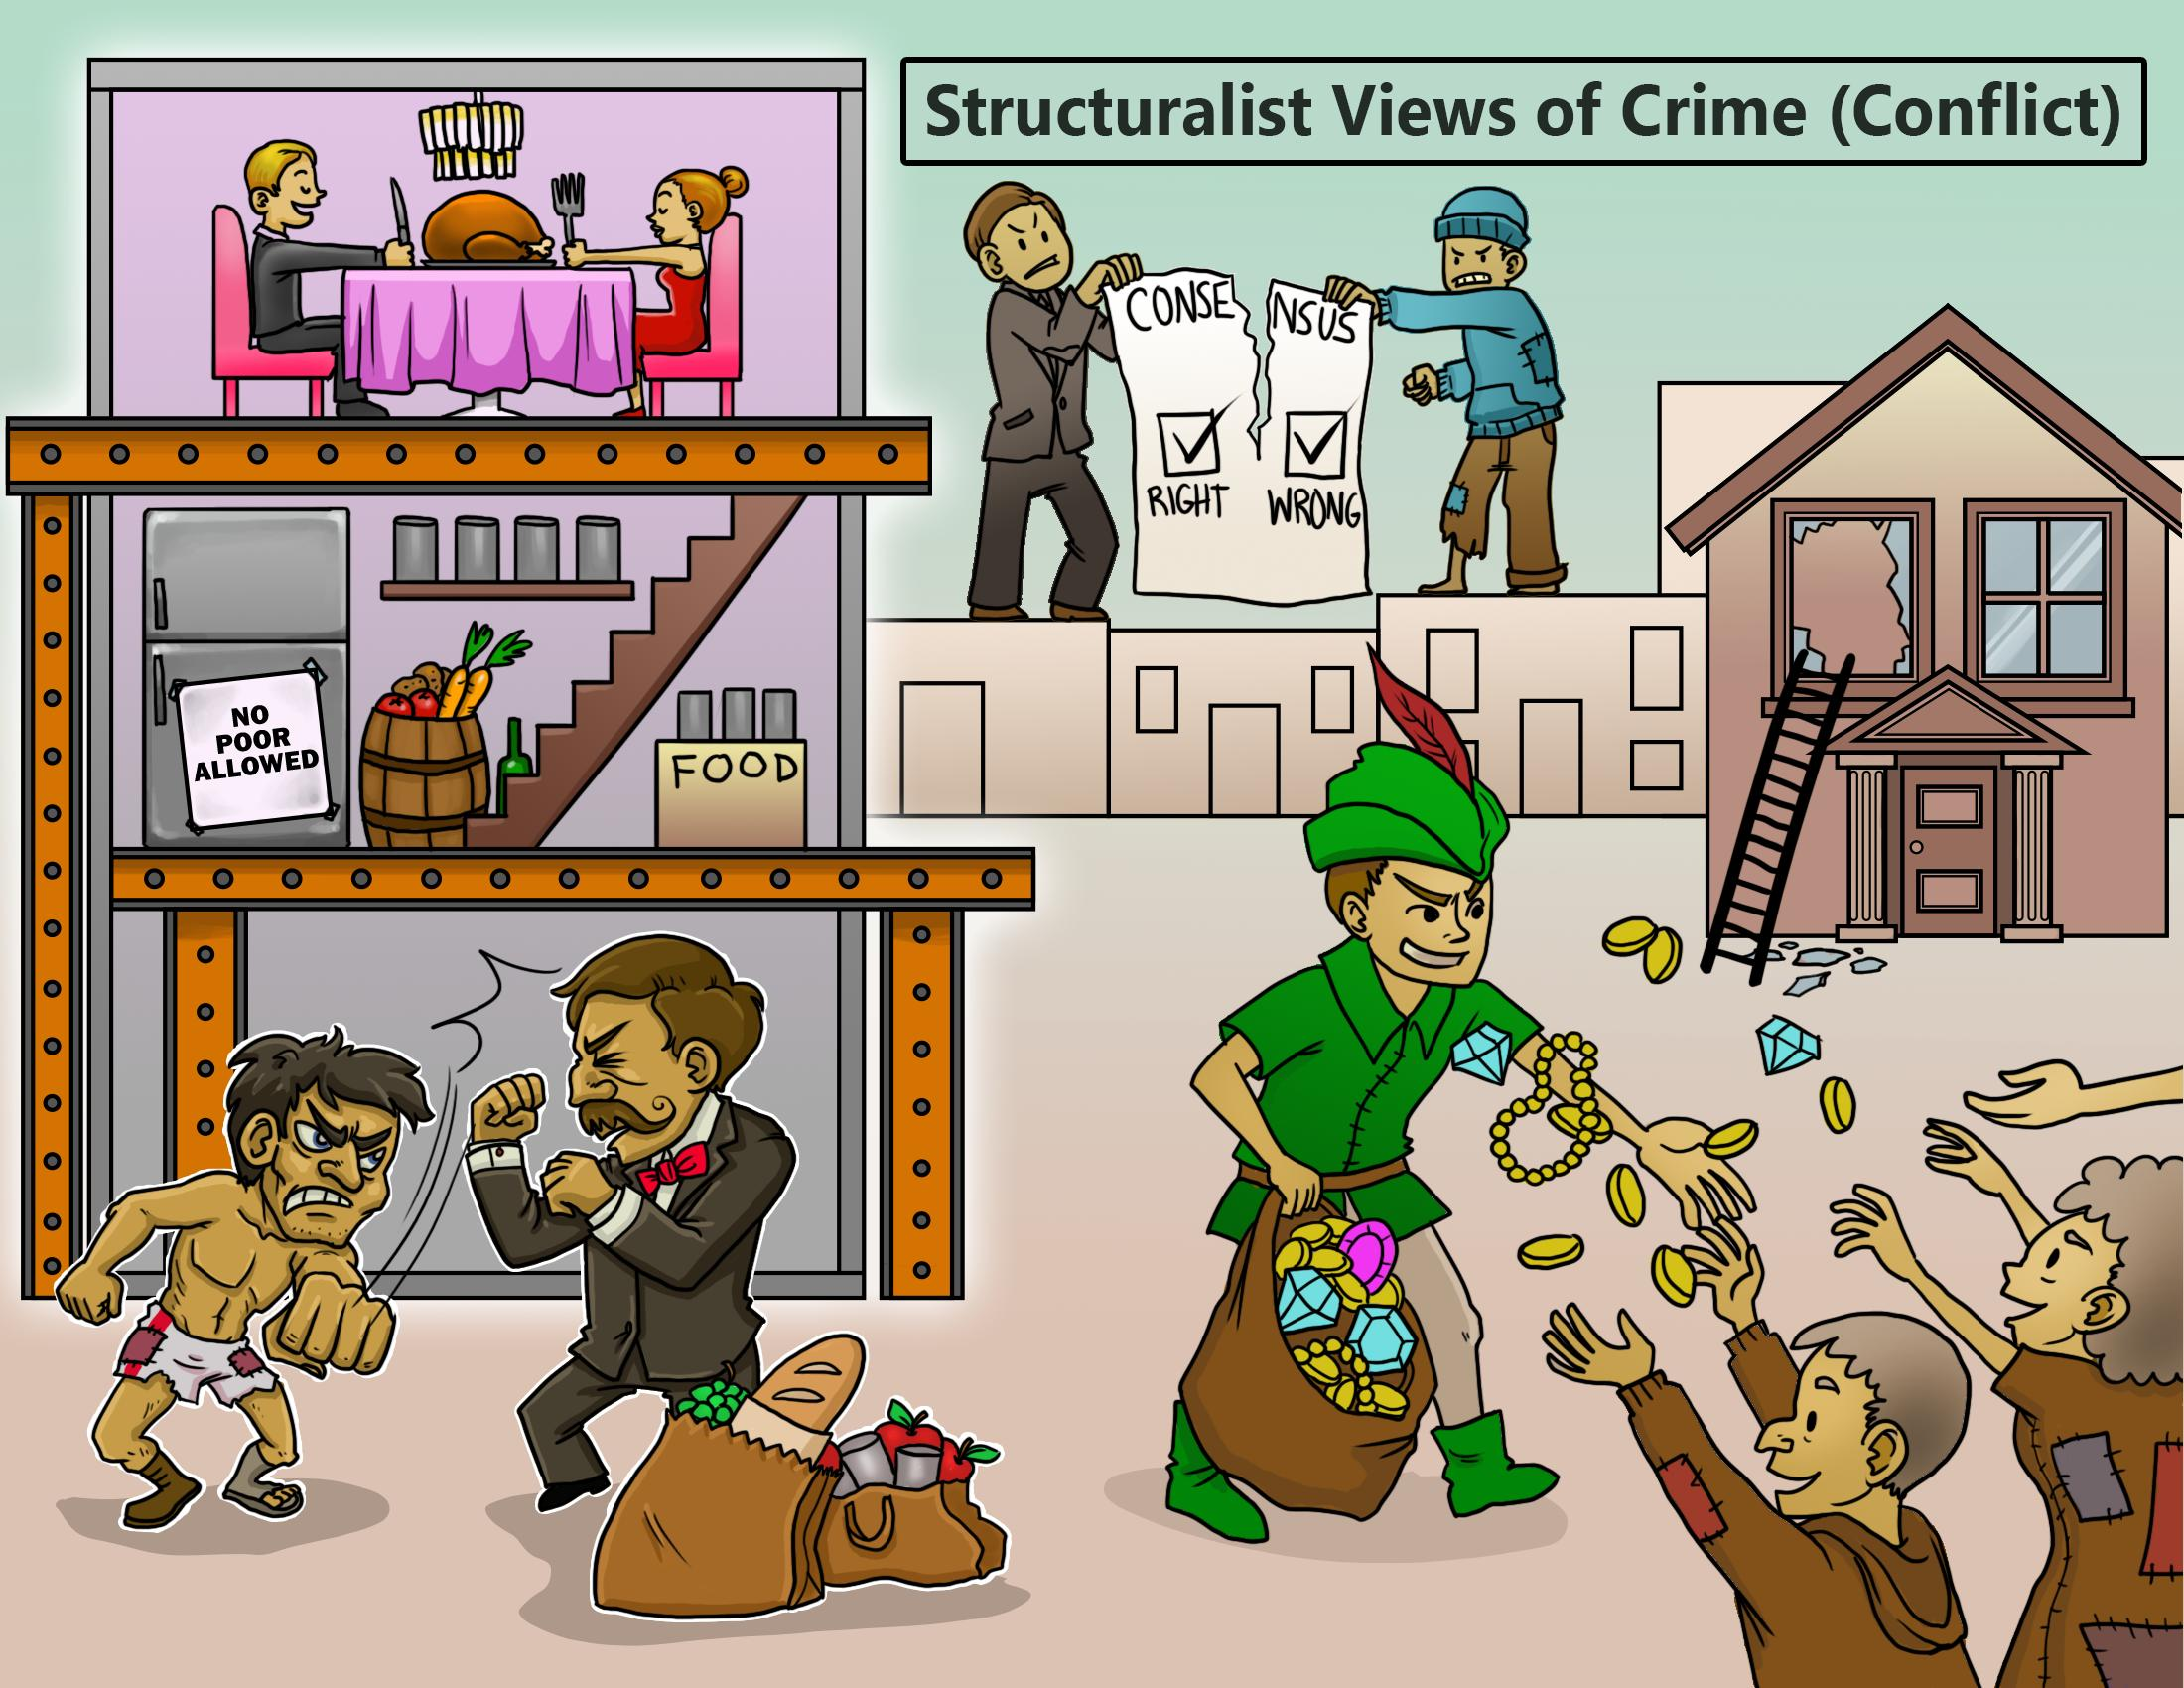 Structuralist views of Crime (Conflict)